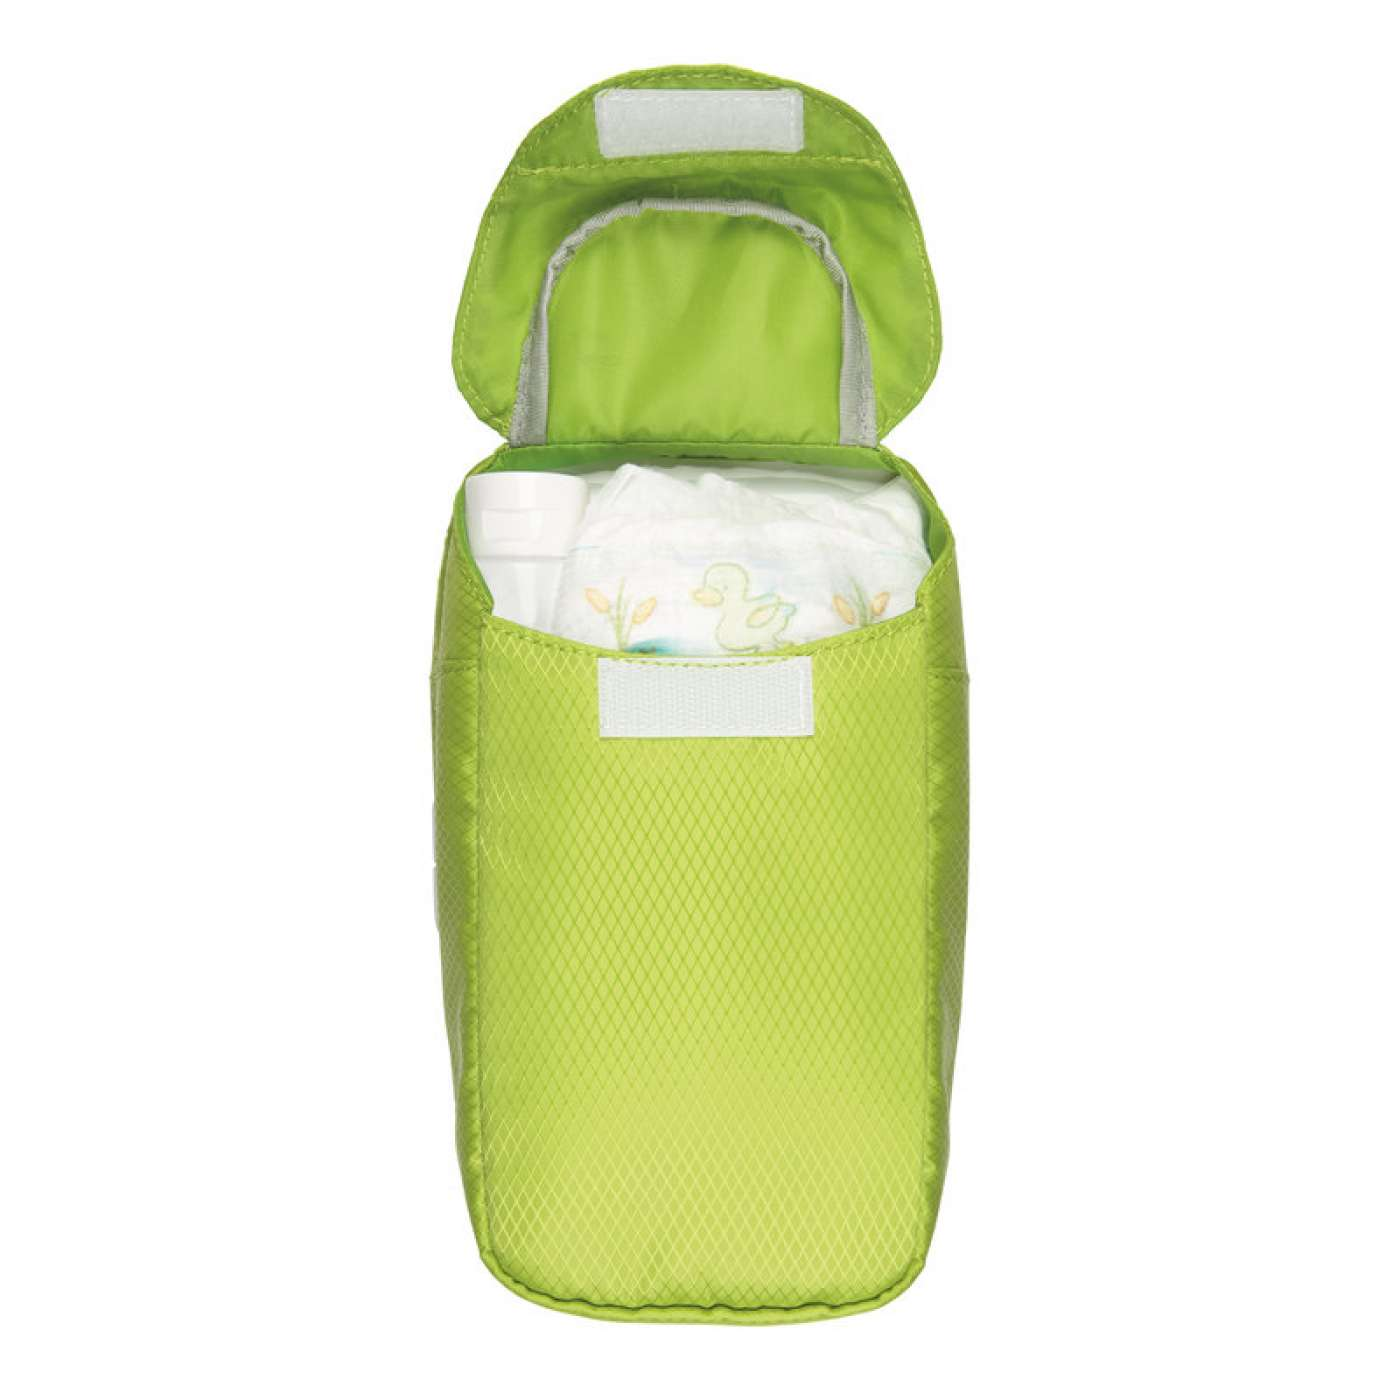 oxo tot on the go wipes dispenser with diaper pouch green. Black Bedroom Furniture Sets. Home Design Ideas